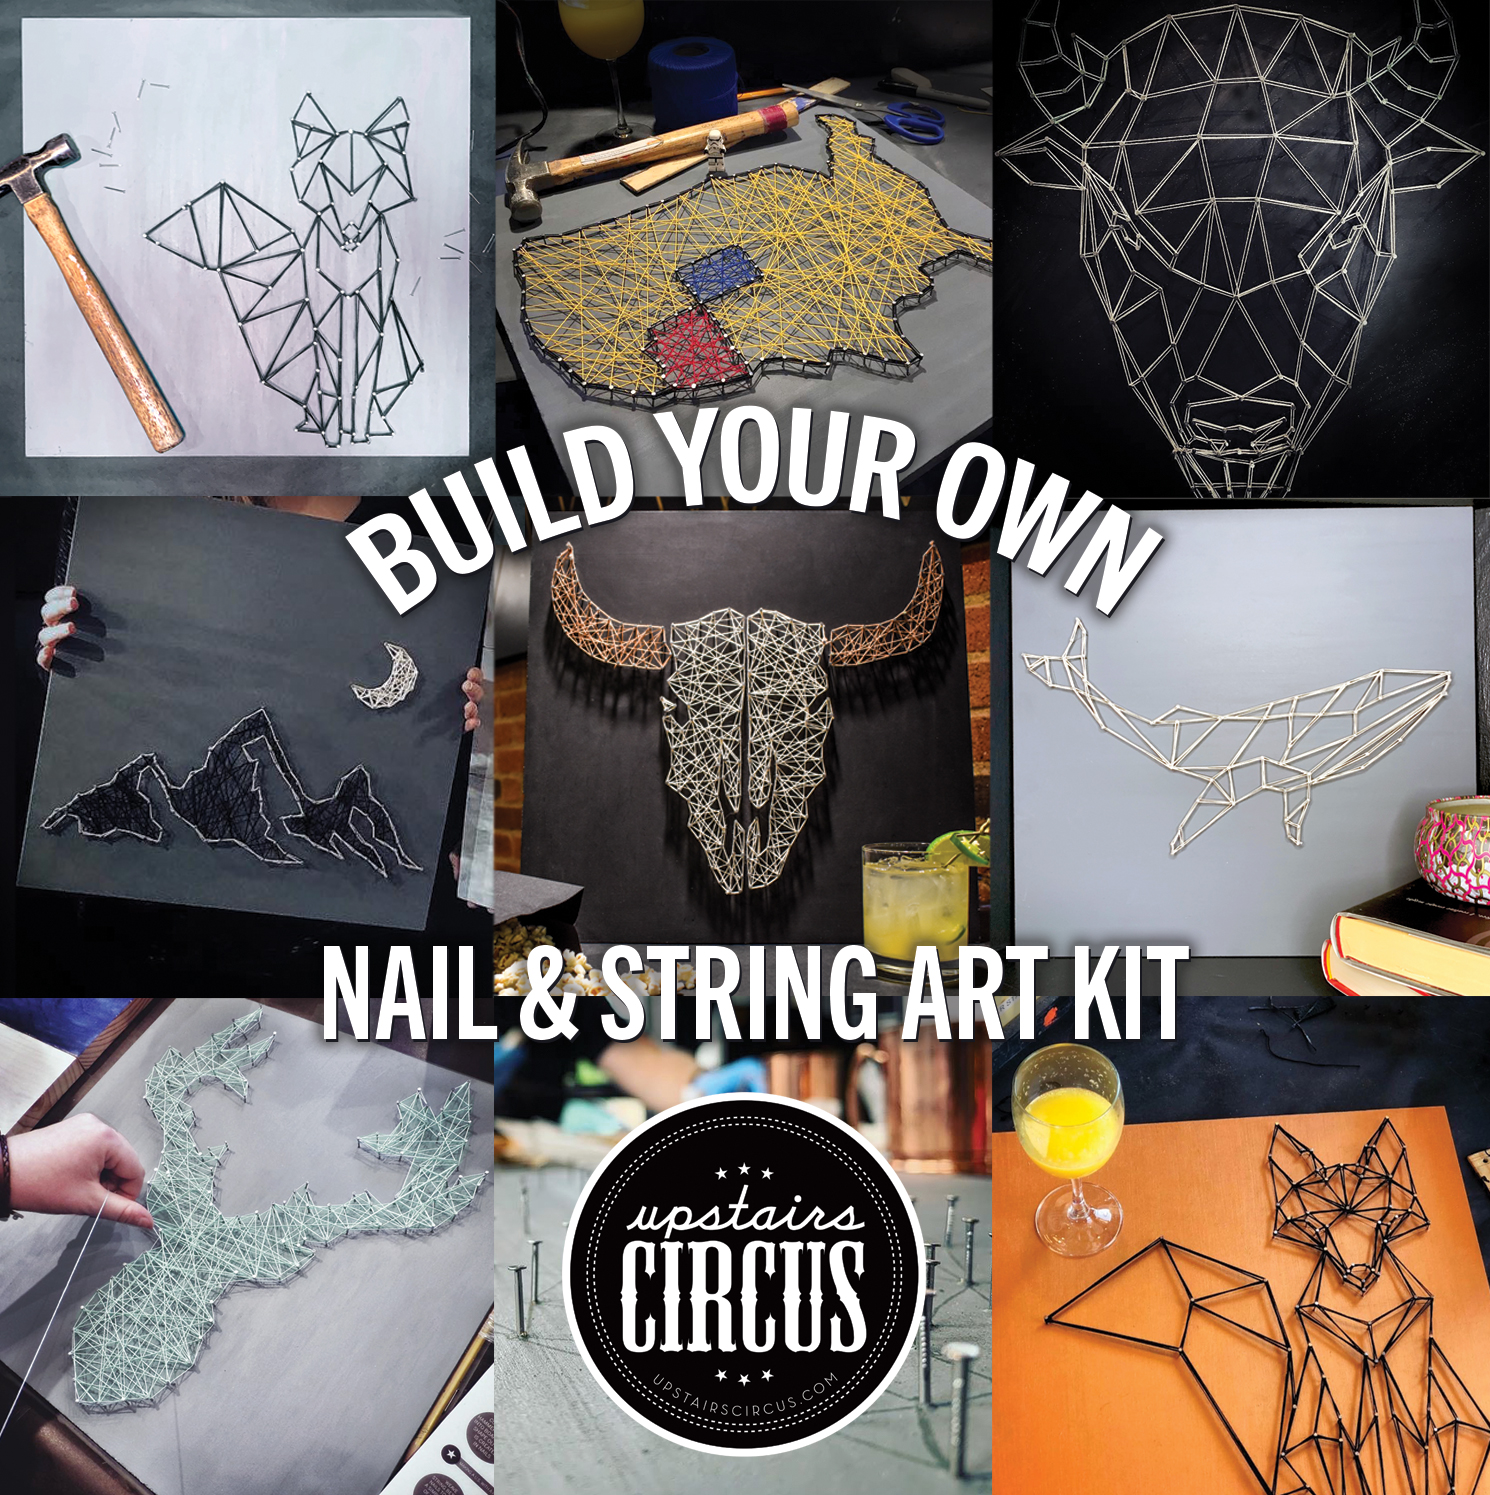 Build Your Own DIY Kit - Upstairs Circus At Home DIY Kits - Nail & String Art Kit